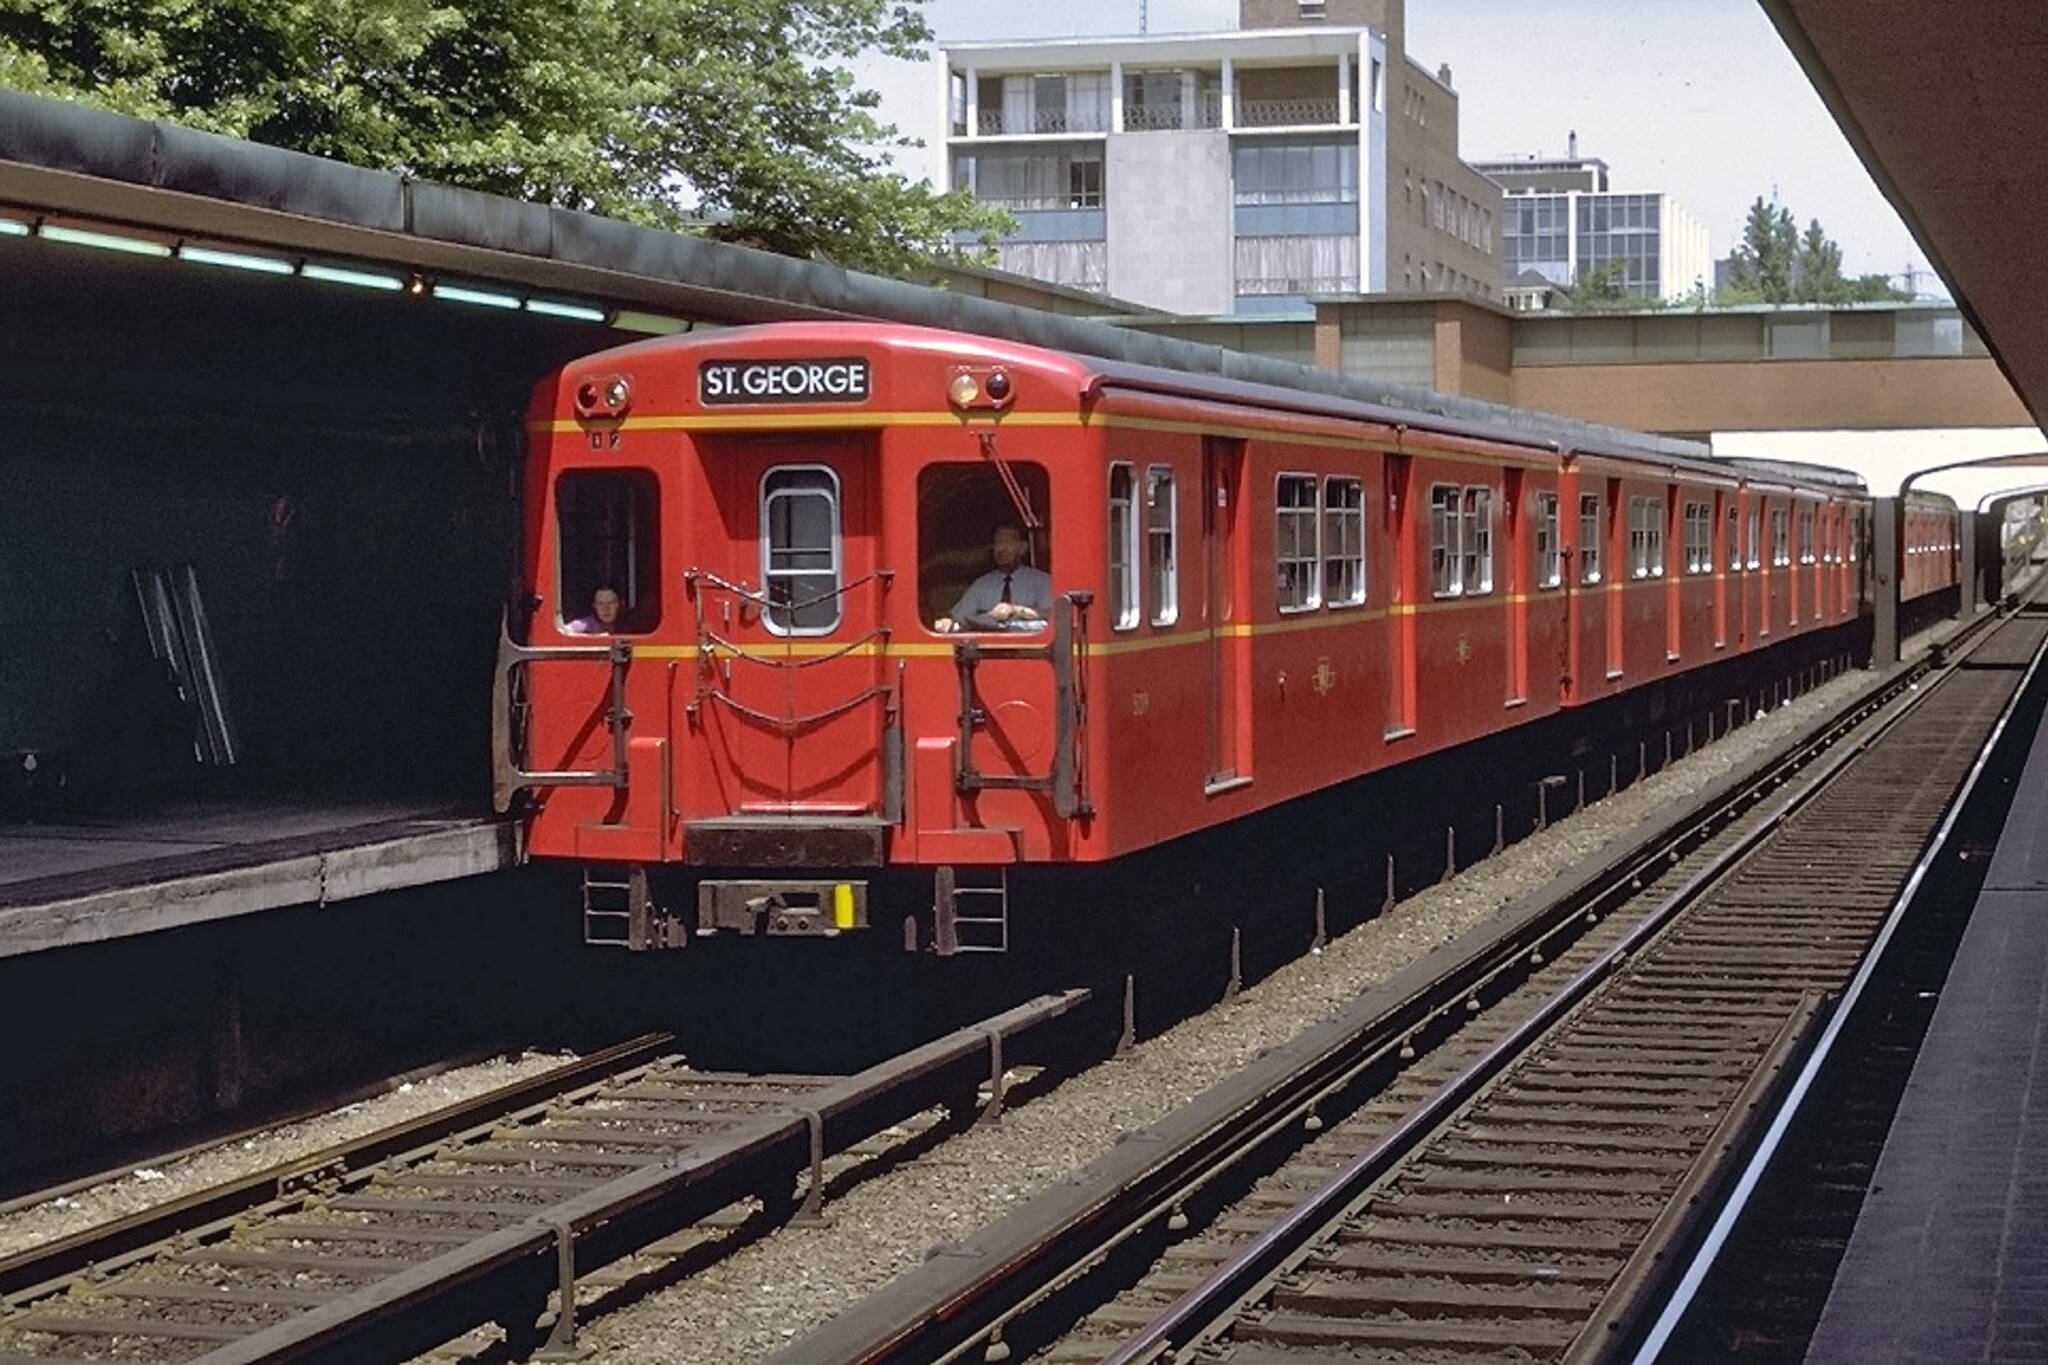 TTC subway history